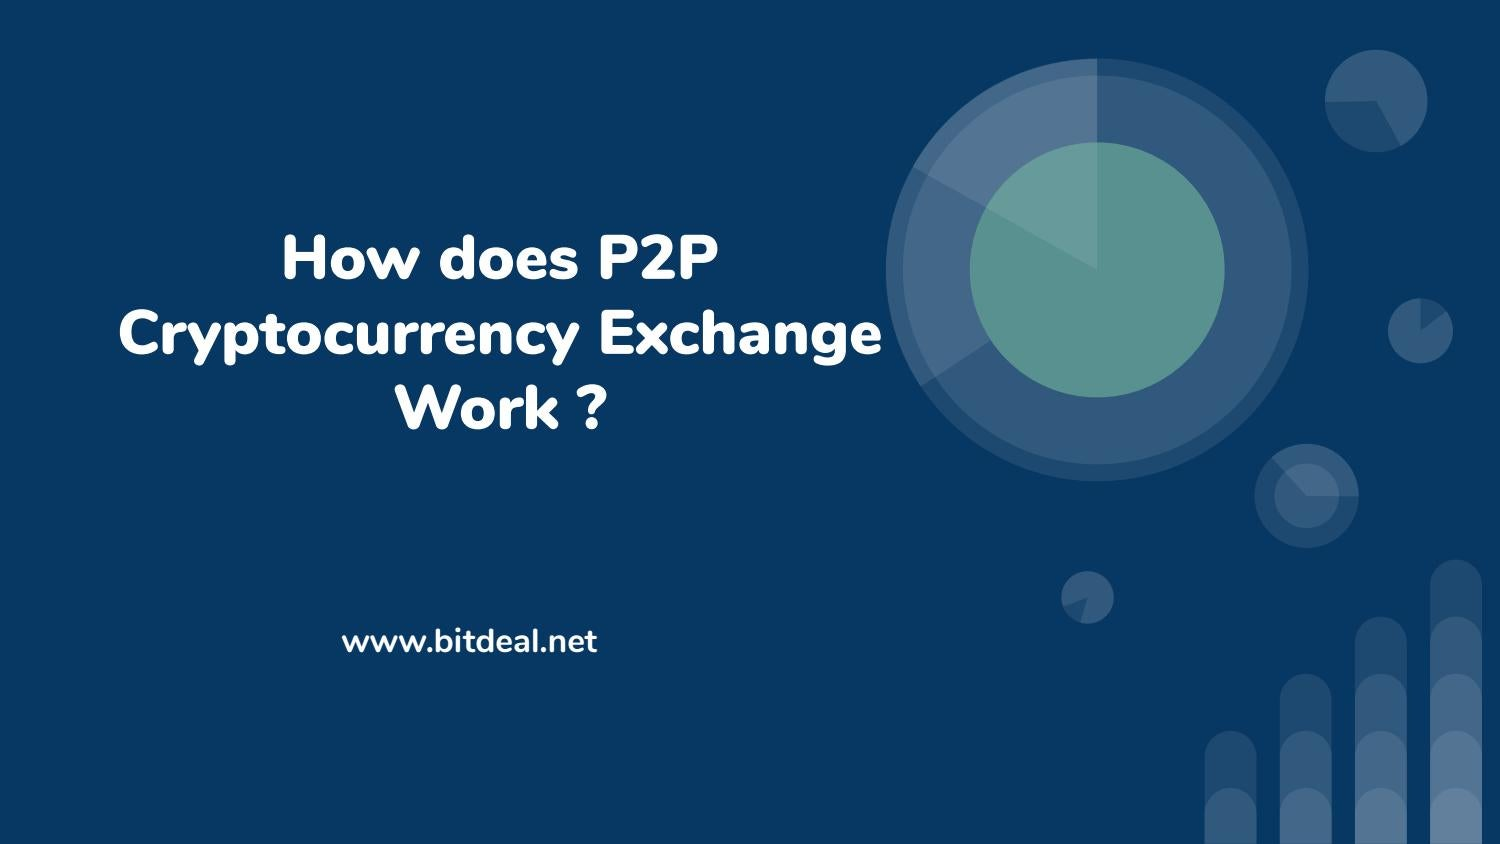 p2p cryptocurrency exchange